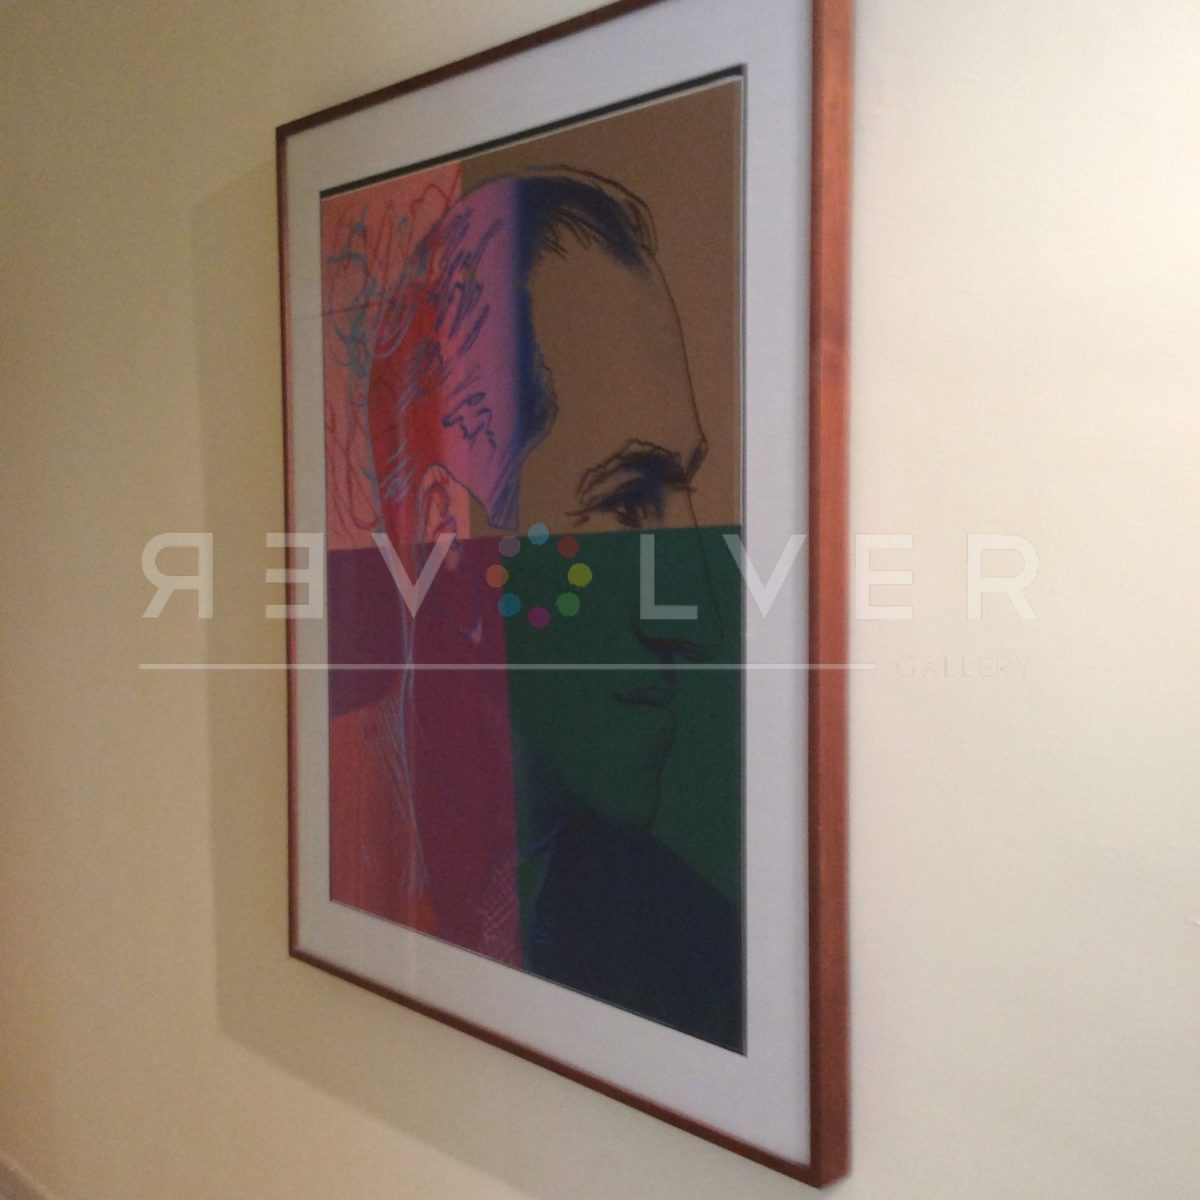 Andy Warhol George Gershwin 231 screenprint in frame and hanging on the wall.